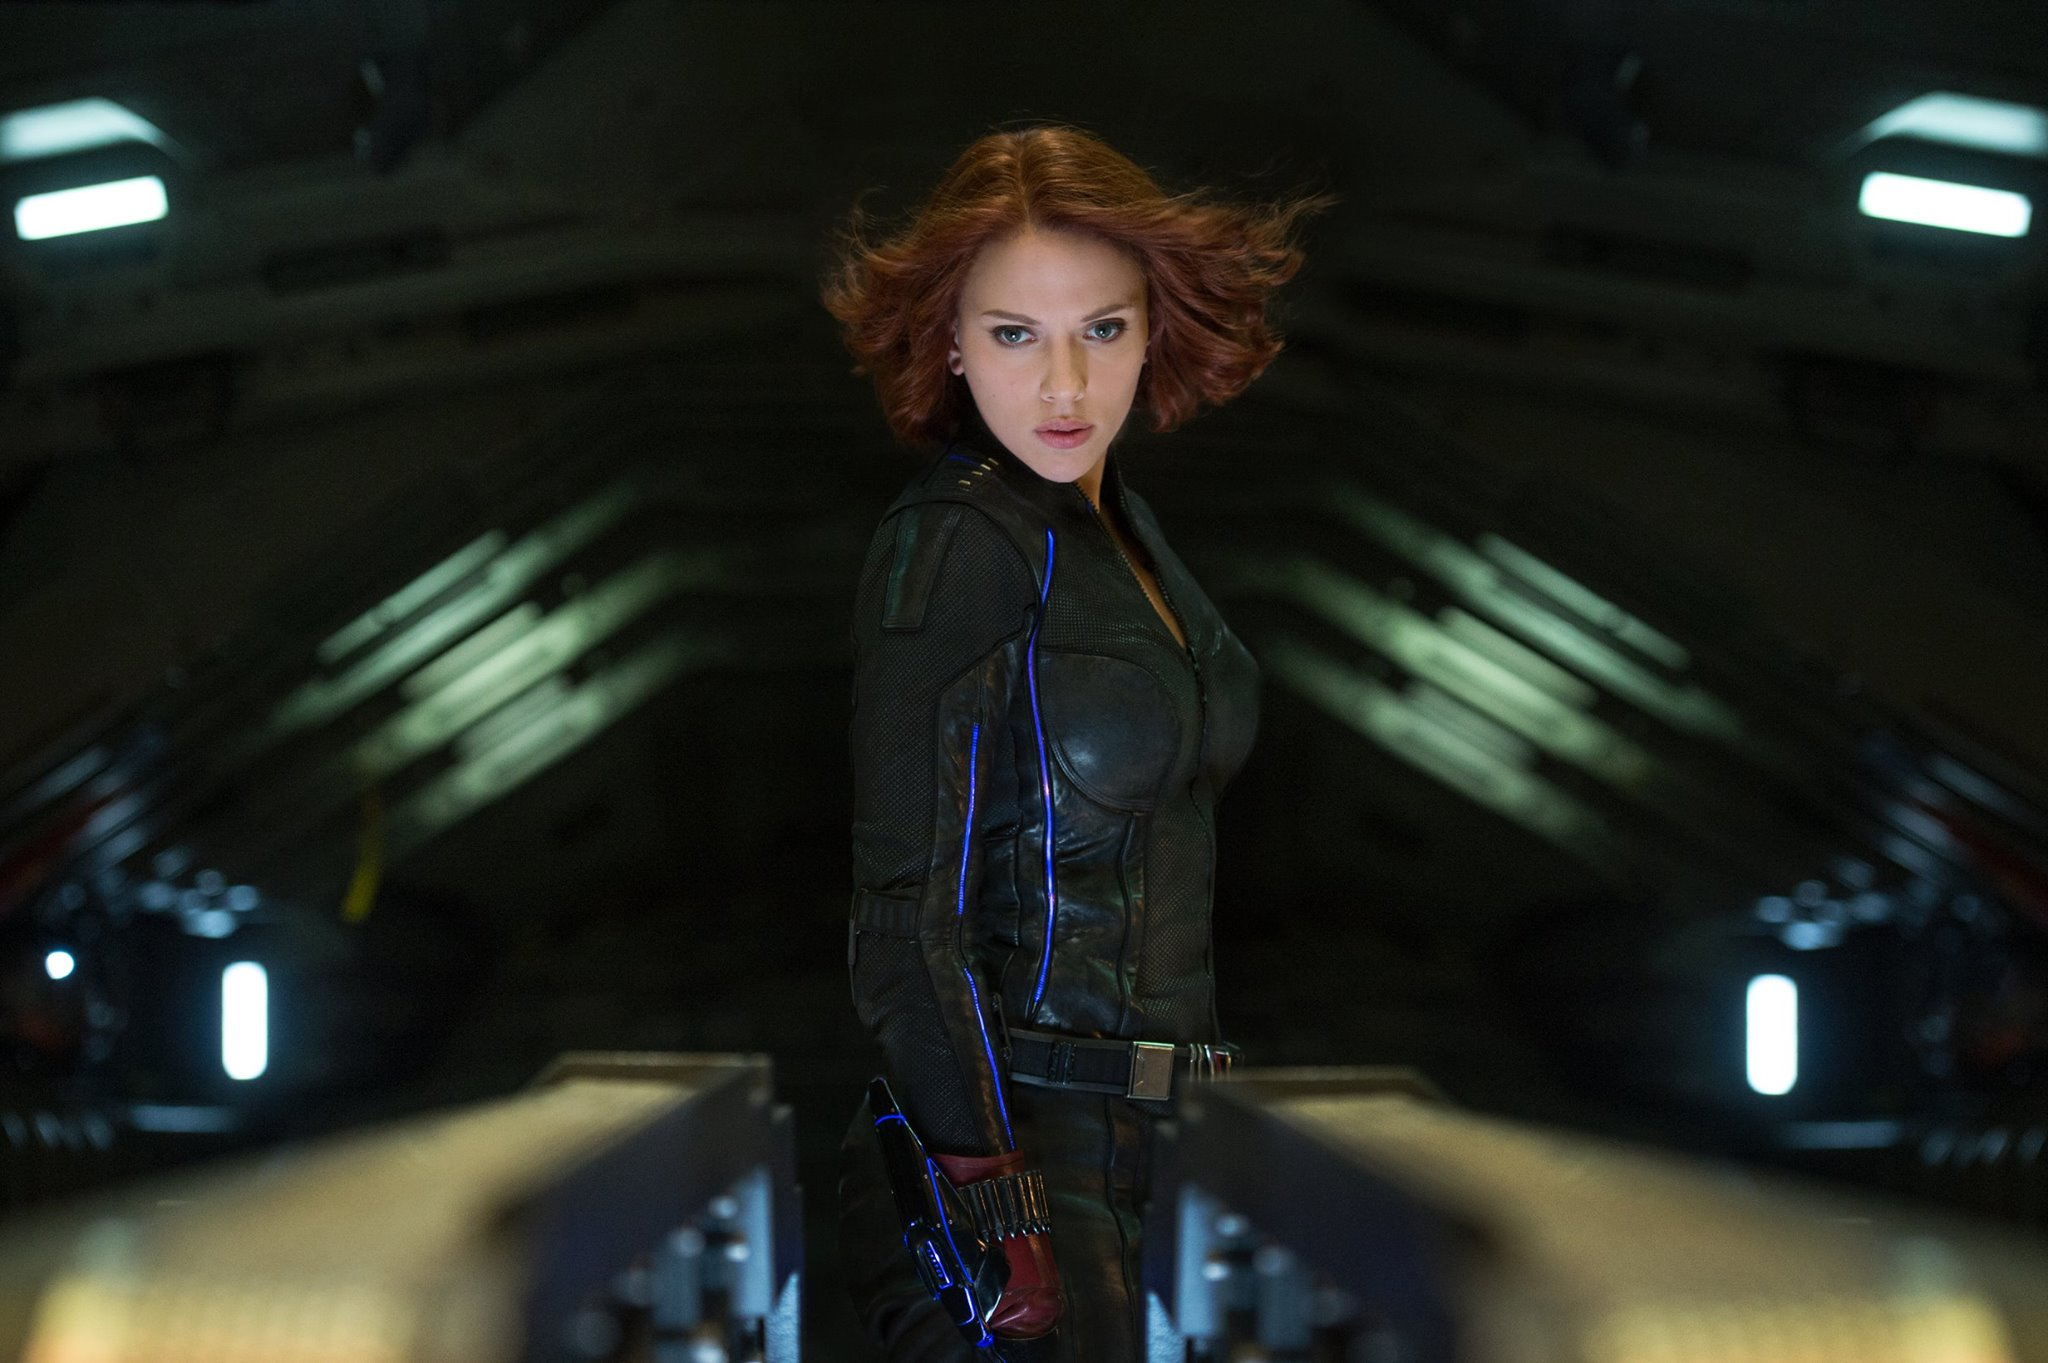 Scarlett Johansson as Black Widow in Avengers Age of Ultron